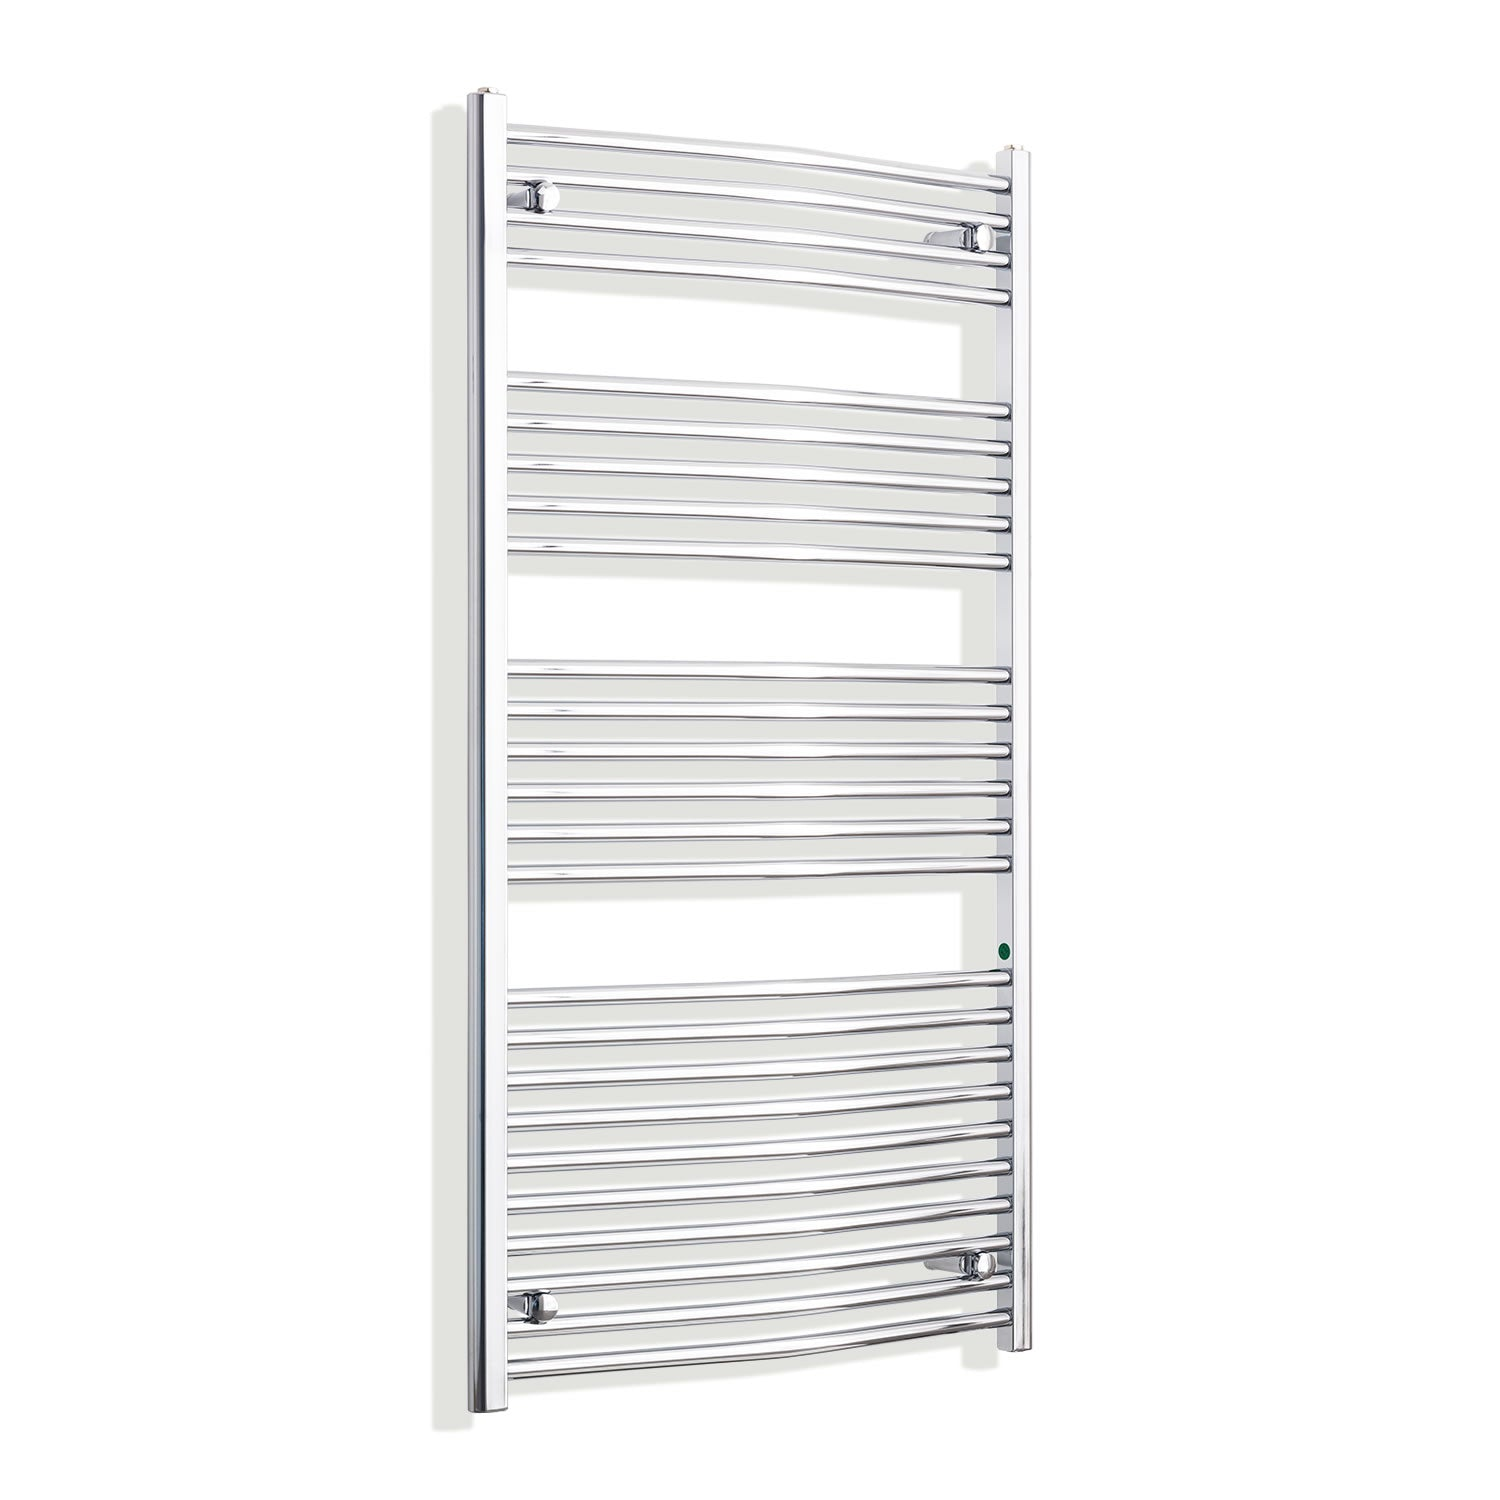 750mm x 1400mm High Curved Chrome Towel Rail Radiator